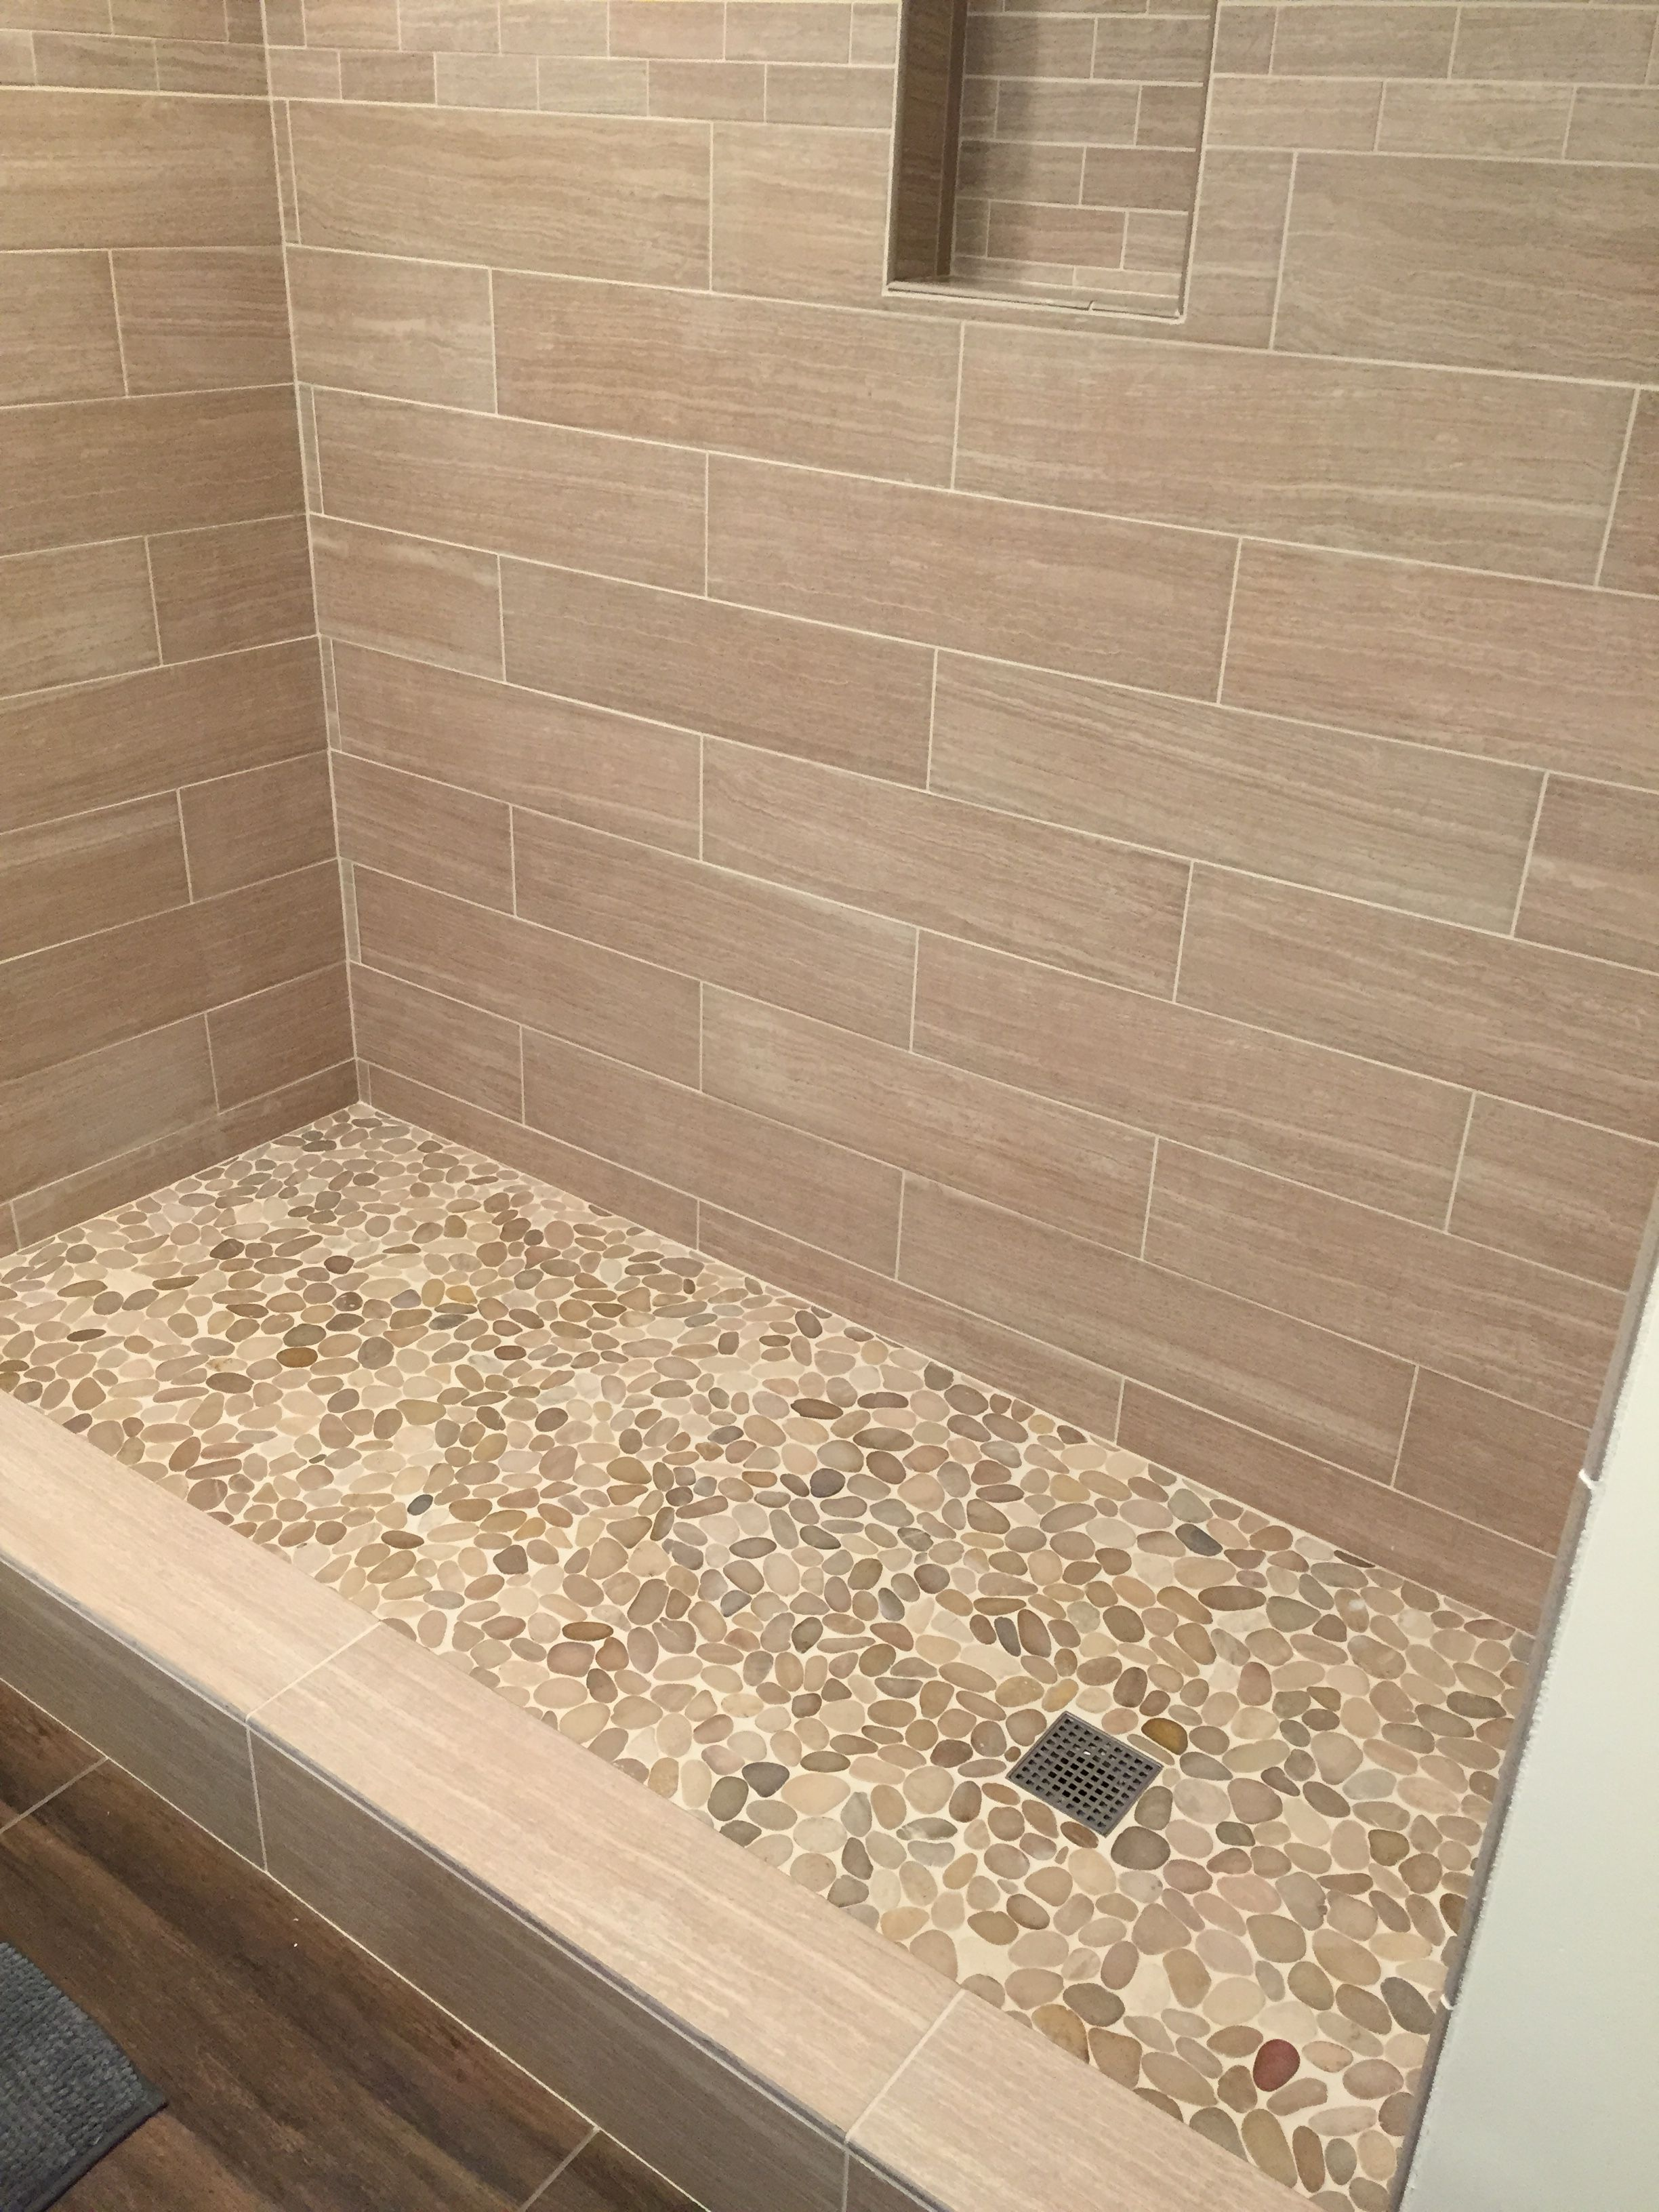 See Great Bathroom Shower Remodel Ideas From Homeowners Who Have Successfully Tackled This Bathroom Remodel Shower Pebble Tile Shower Pebble Tile Shower Floor